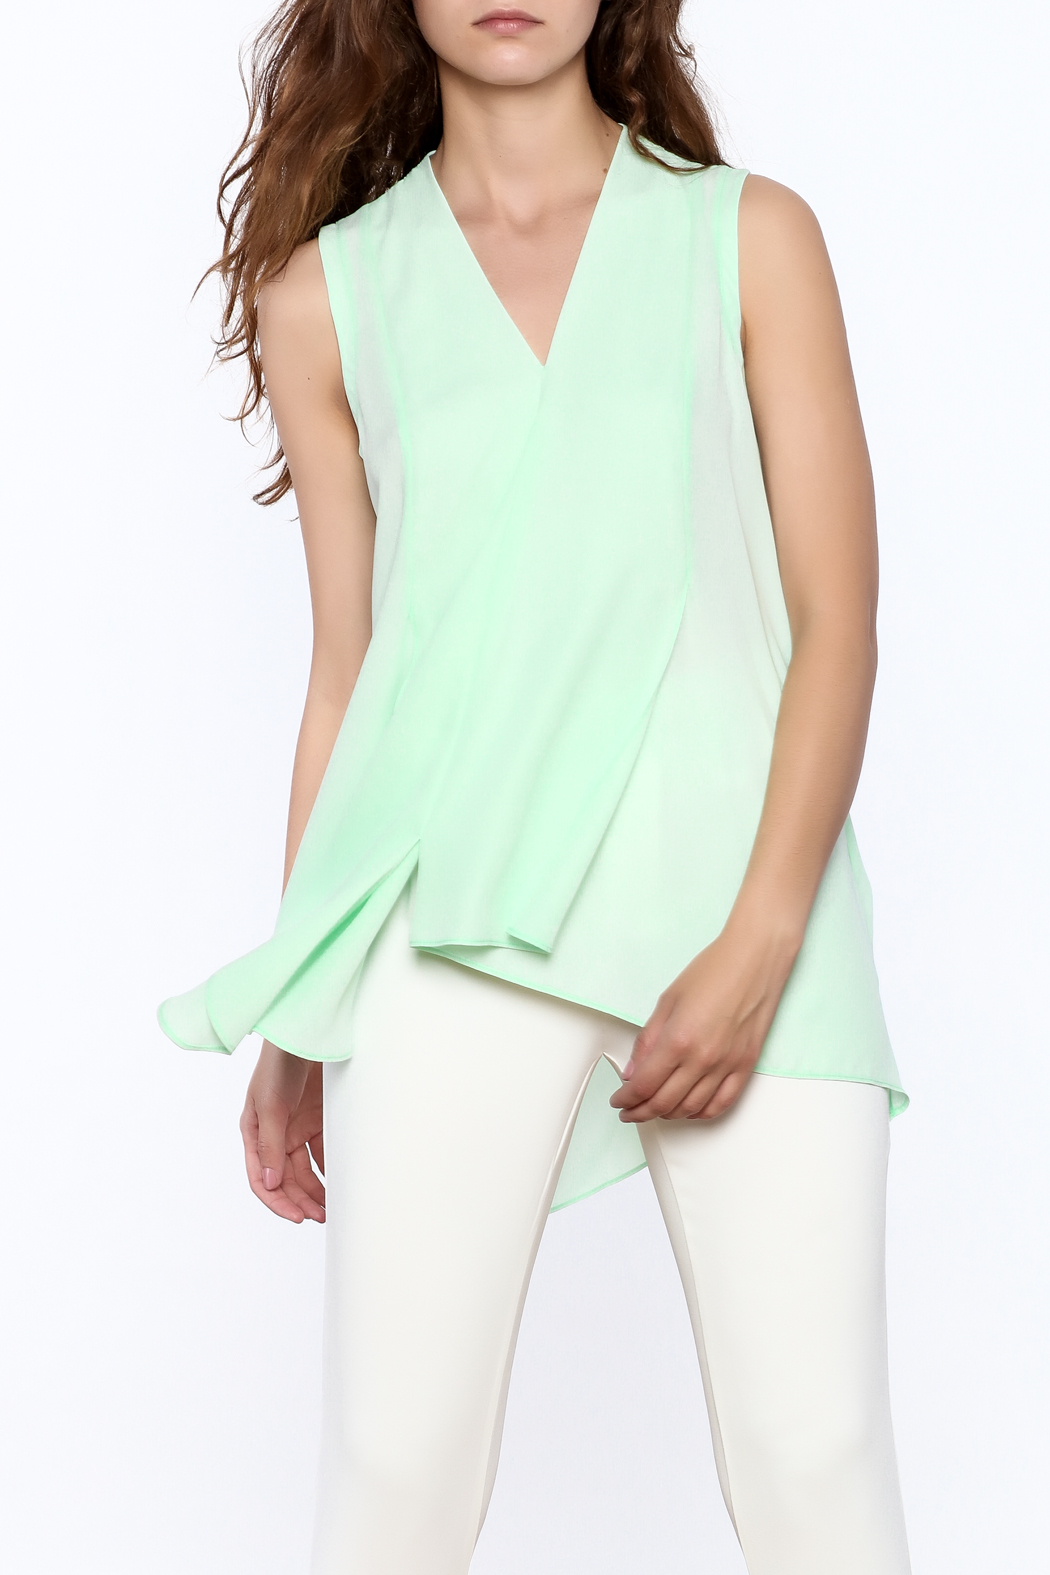 Joseph Ribkoff Mint Sleeveless Top - Front Cropped Image